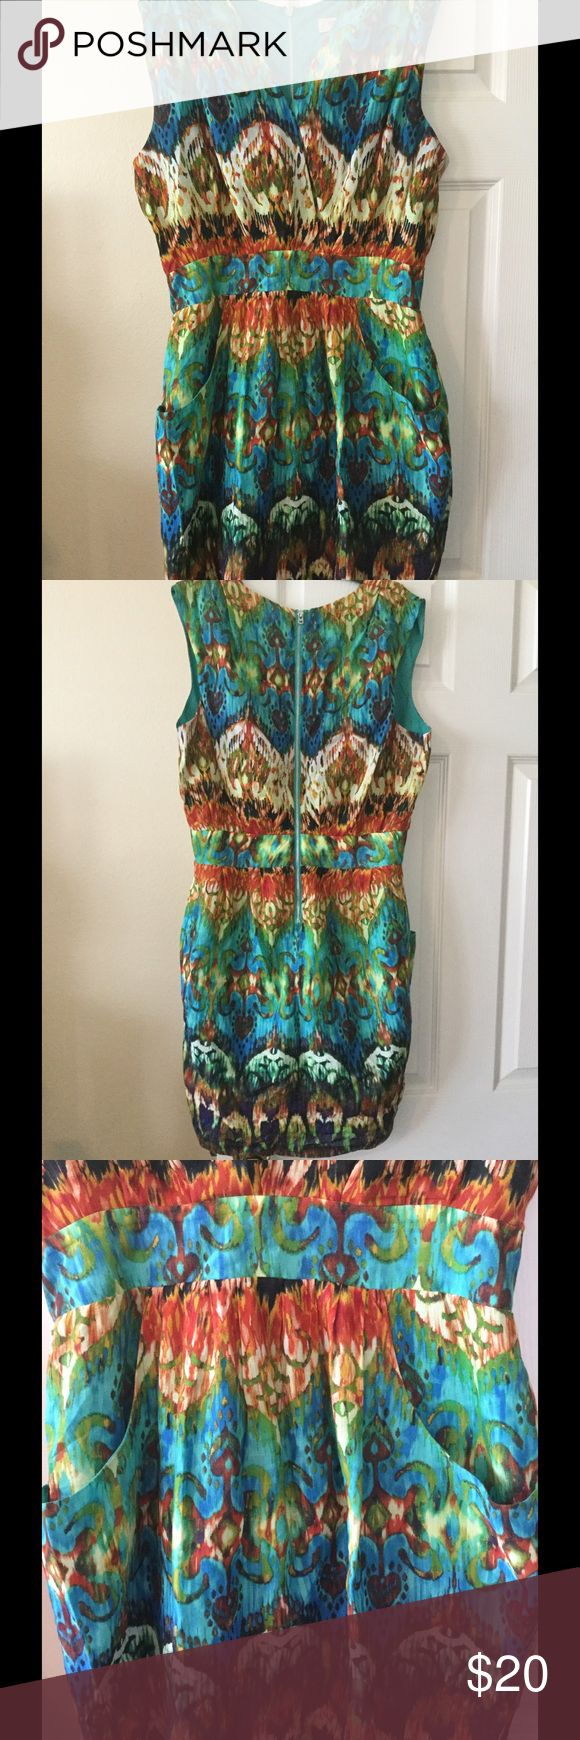 Colorful guess dress Gorgeous colorful dress by guess. Size 10. Has pockets on the th sides as seen in picture 3. Zips up in the back as seen in picture 2. Preloved euc Guess Dresses